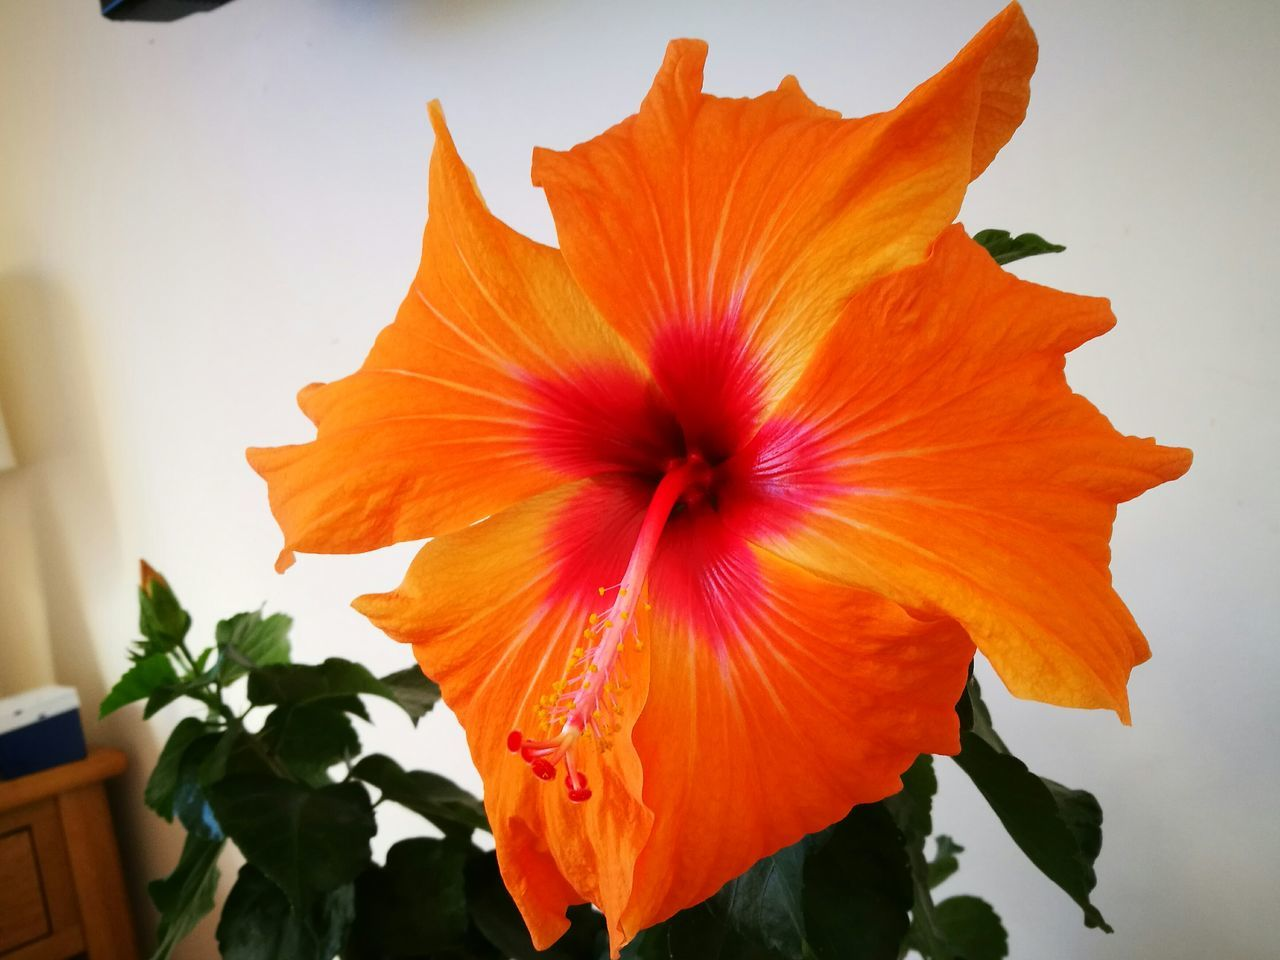 flower, petal, orange color, flower head, fragility, beauty in nature, freshness, nature, blooming, plant, hibiscus, growth, day, no people, close-up, outdoors, day lily